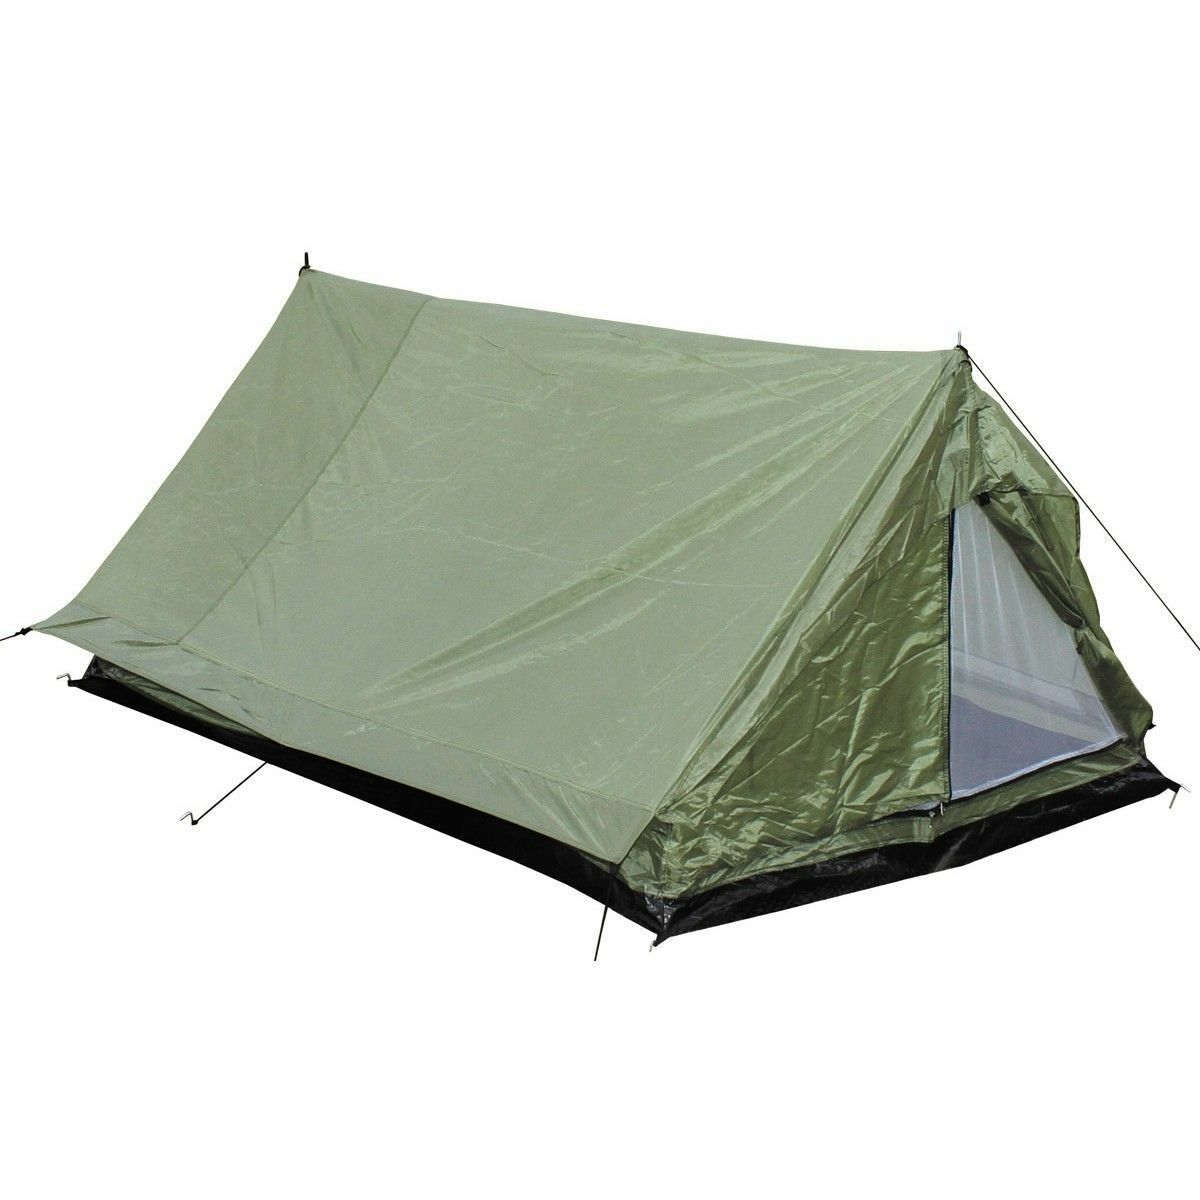 Standard Two Man Military Army Tactical Double Shelter - OD Grün - Brand New